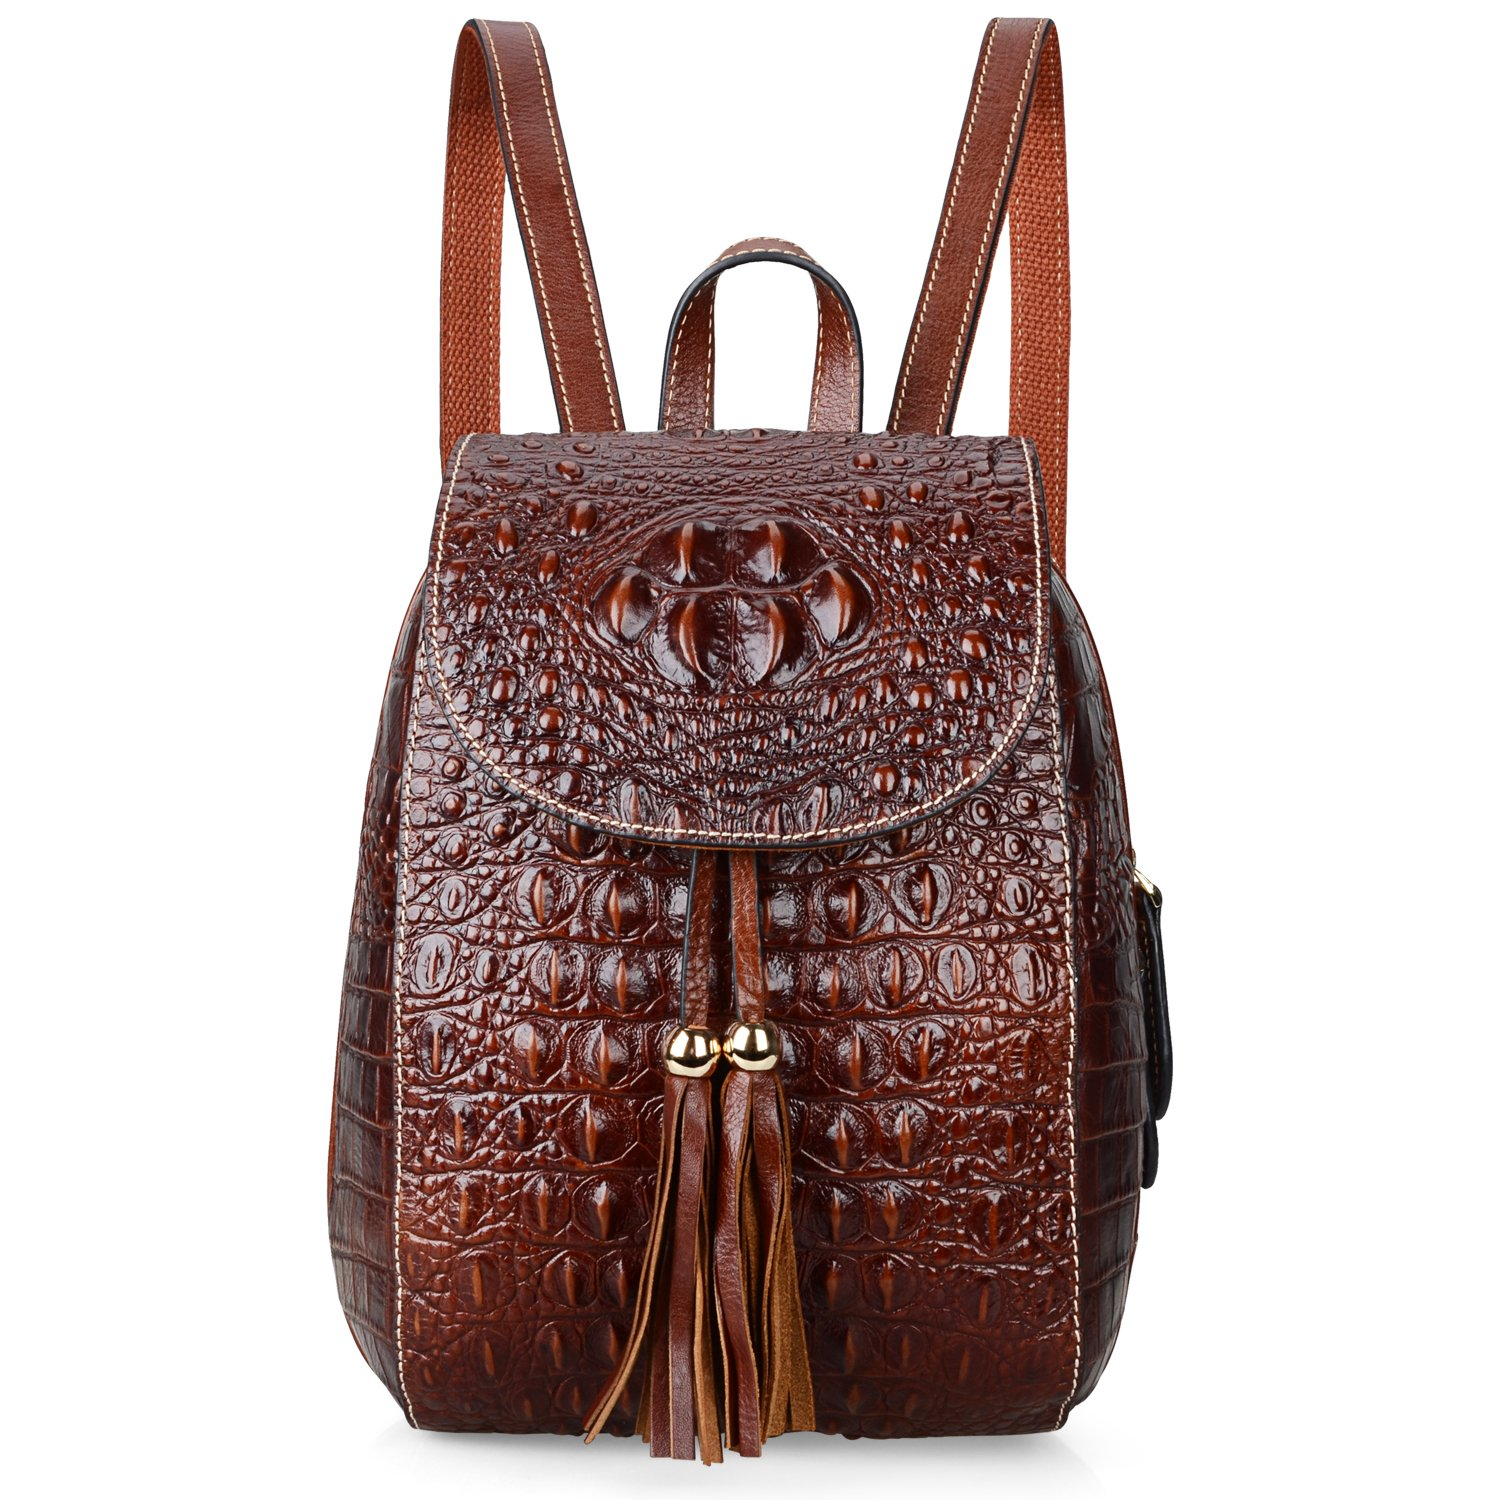 Pijushi Womens Mini Leather Backpack Crocodile Handbag Purses Holiday Gift (B66810 Brown)